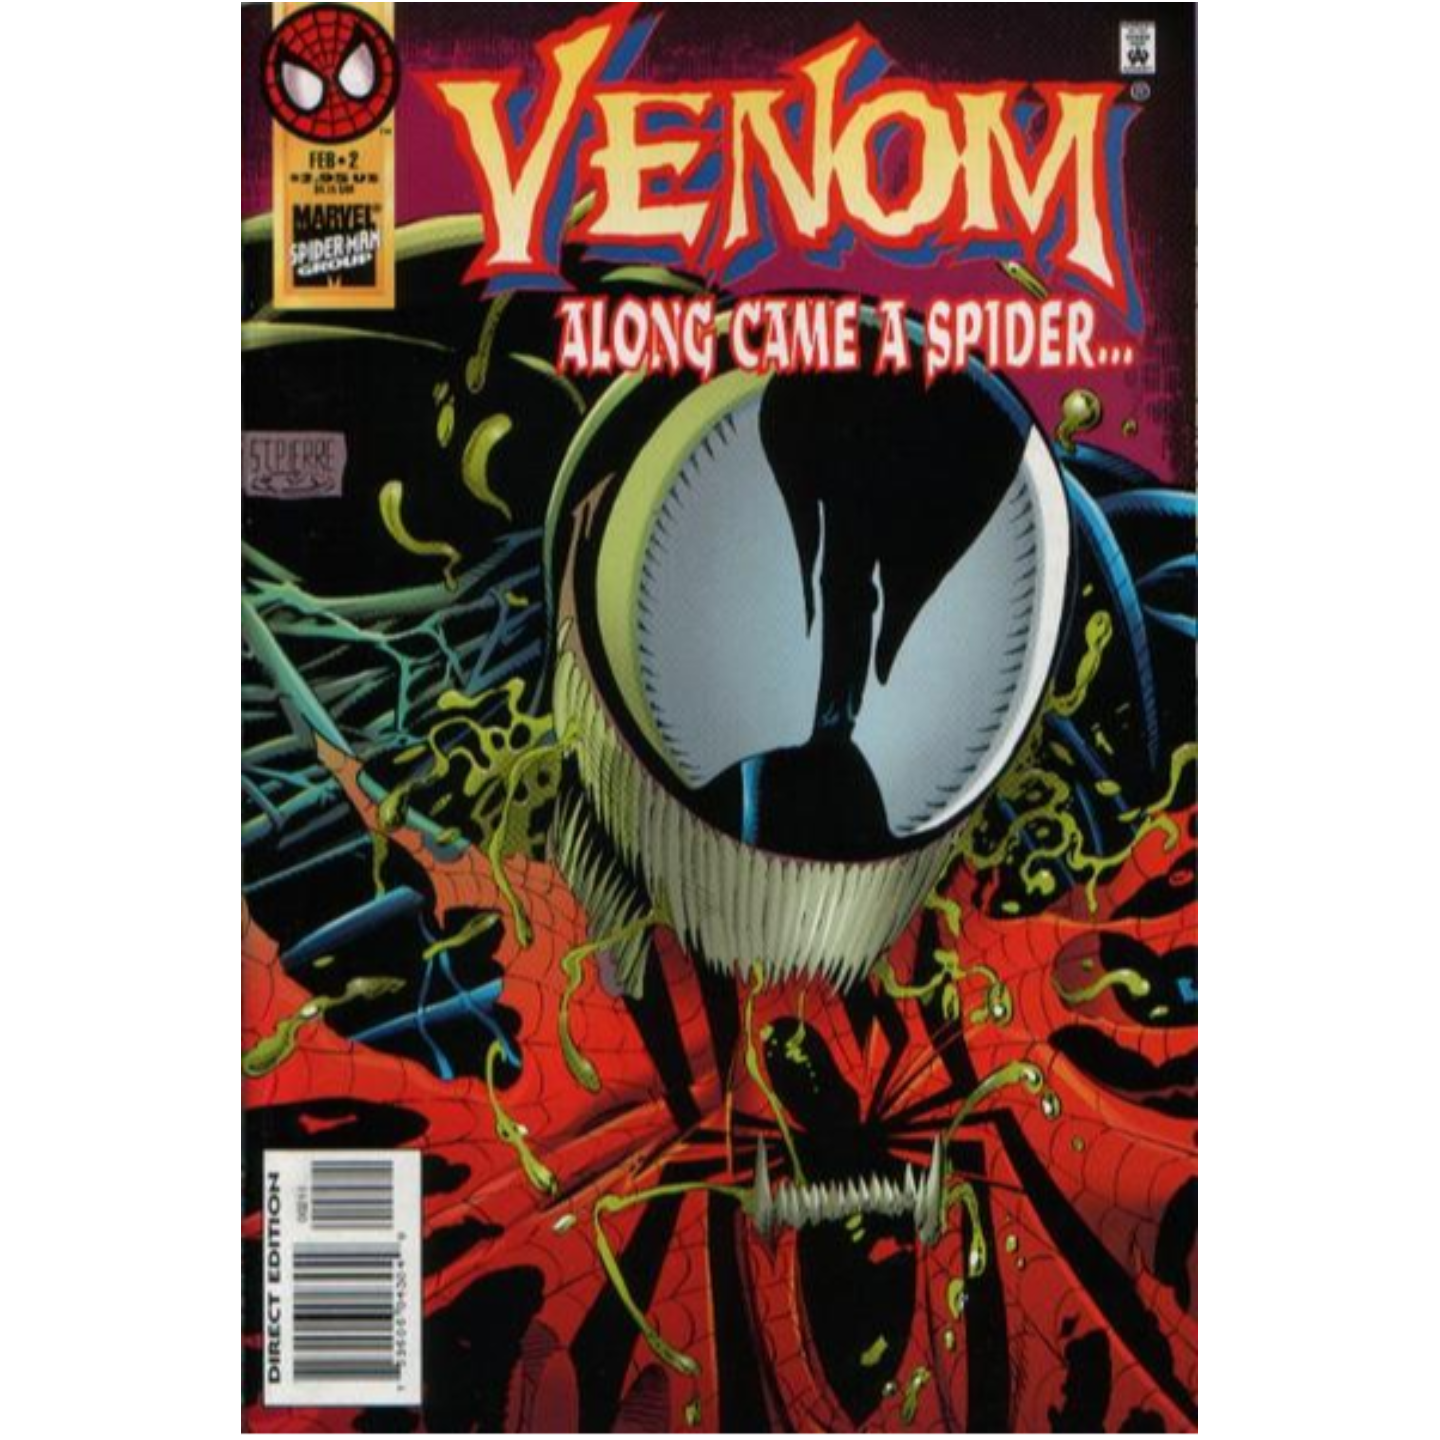 VENOM ALONG CAME A SPIDER 1-4 LOT KEY COLLECTION